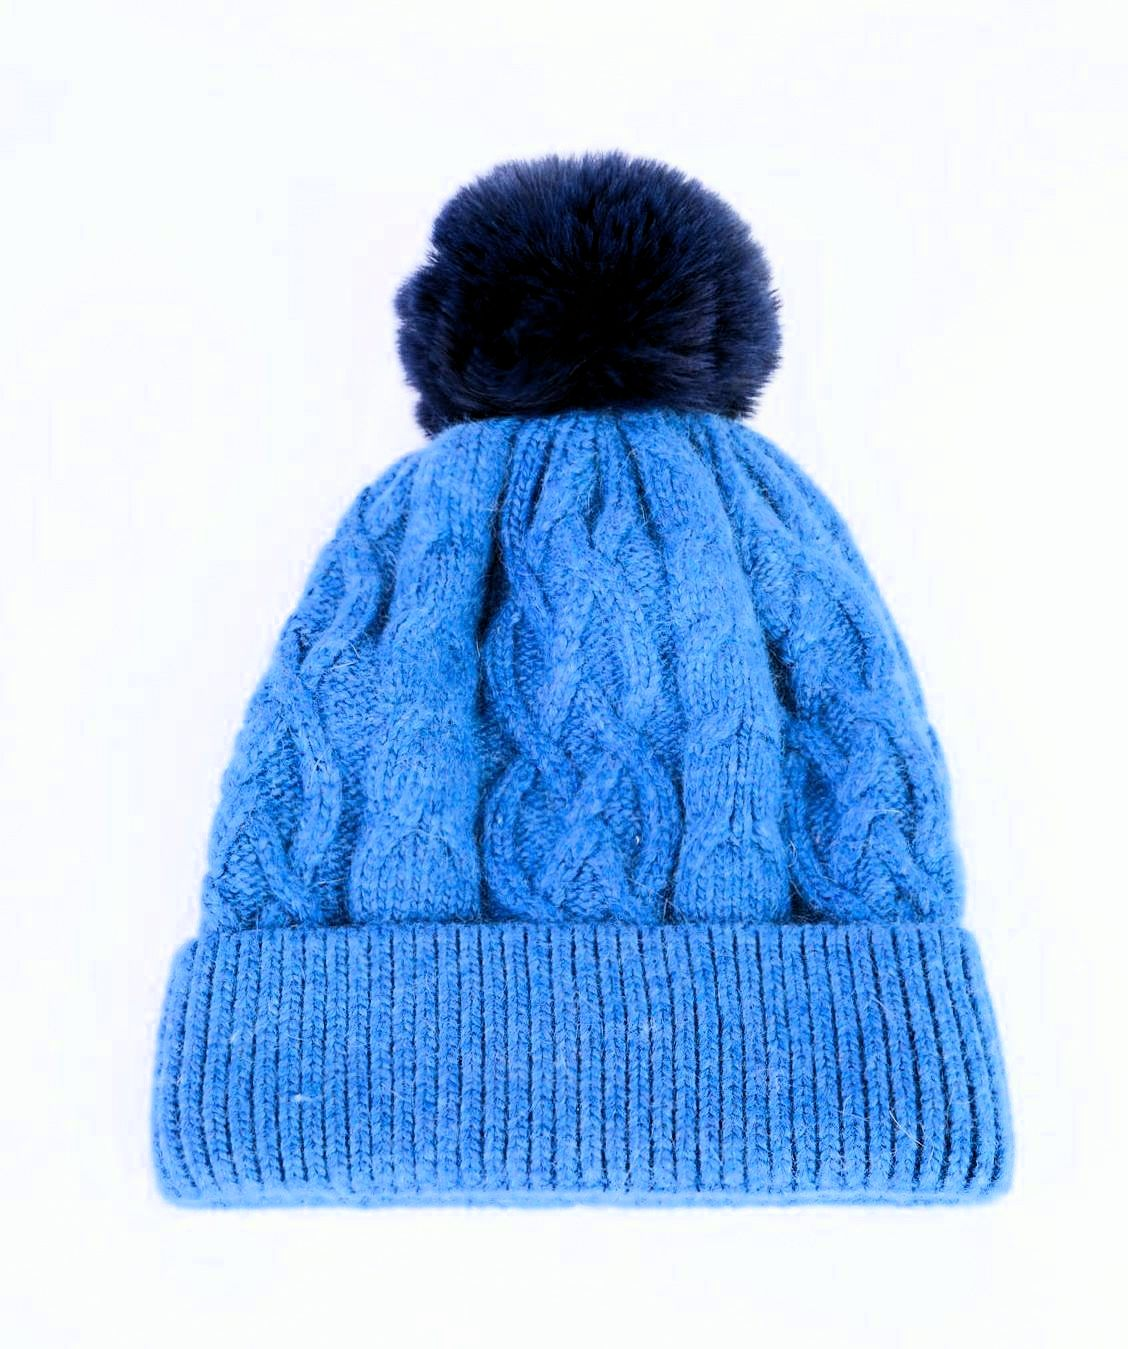 ANYA - Cashmere Bobble Hat - Powder Blue